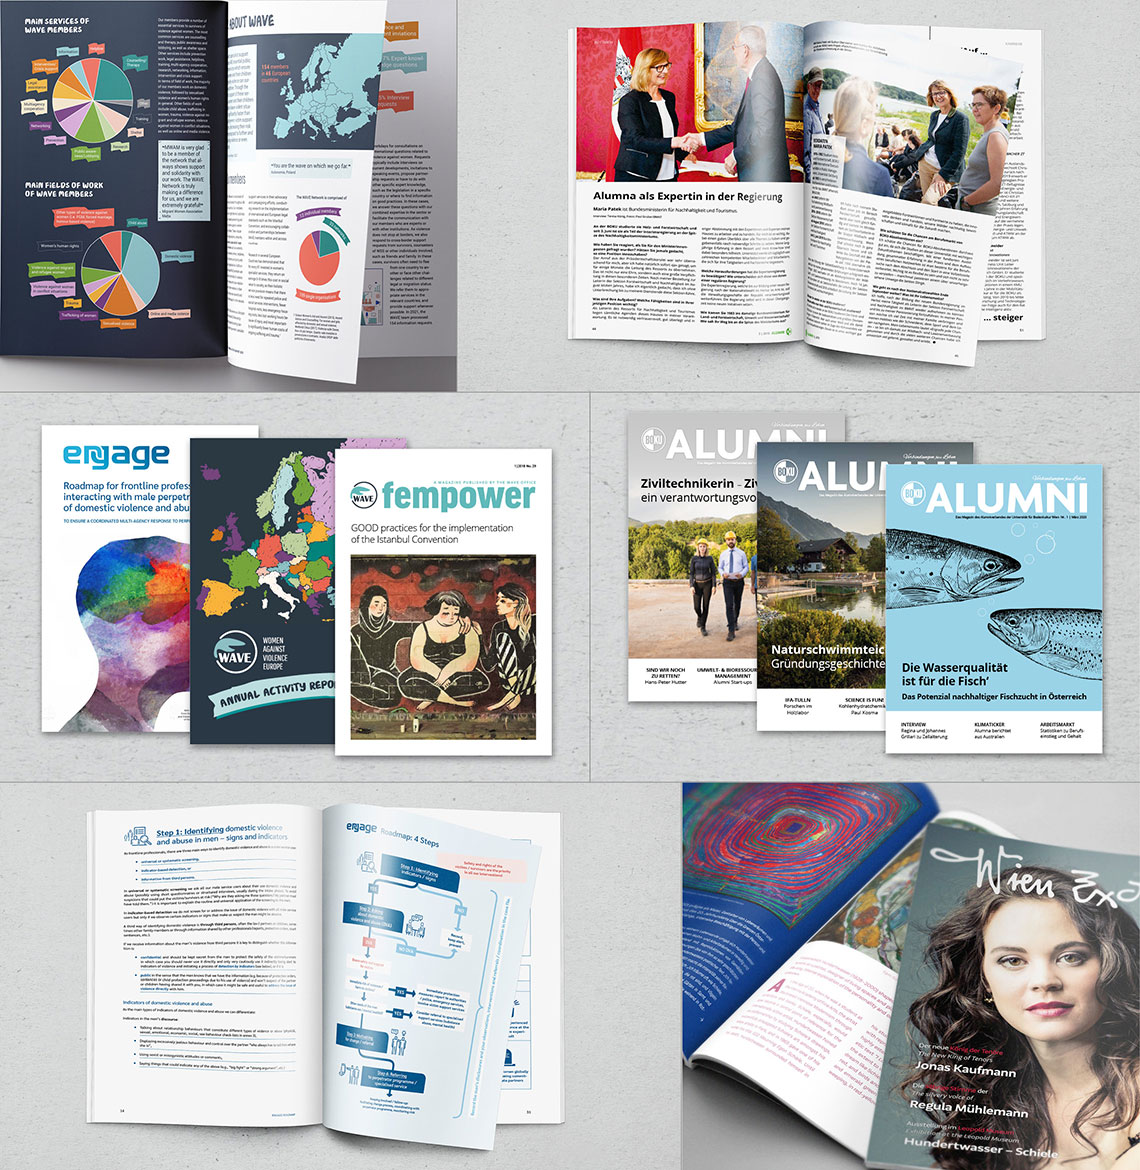 editorial design of magazines, books and reports